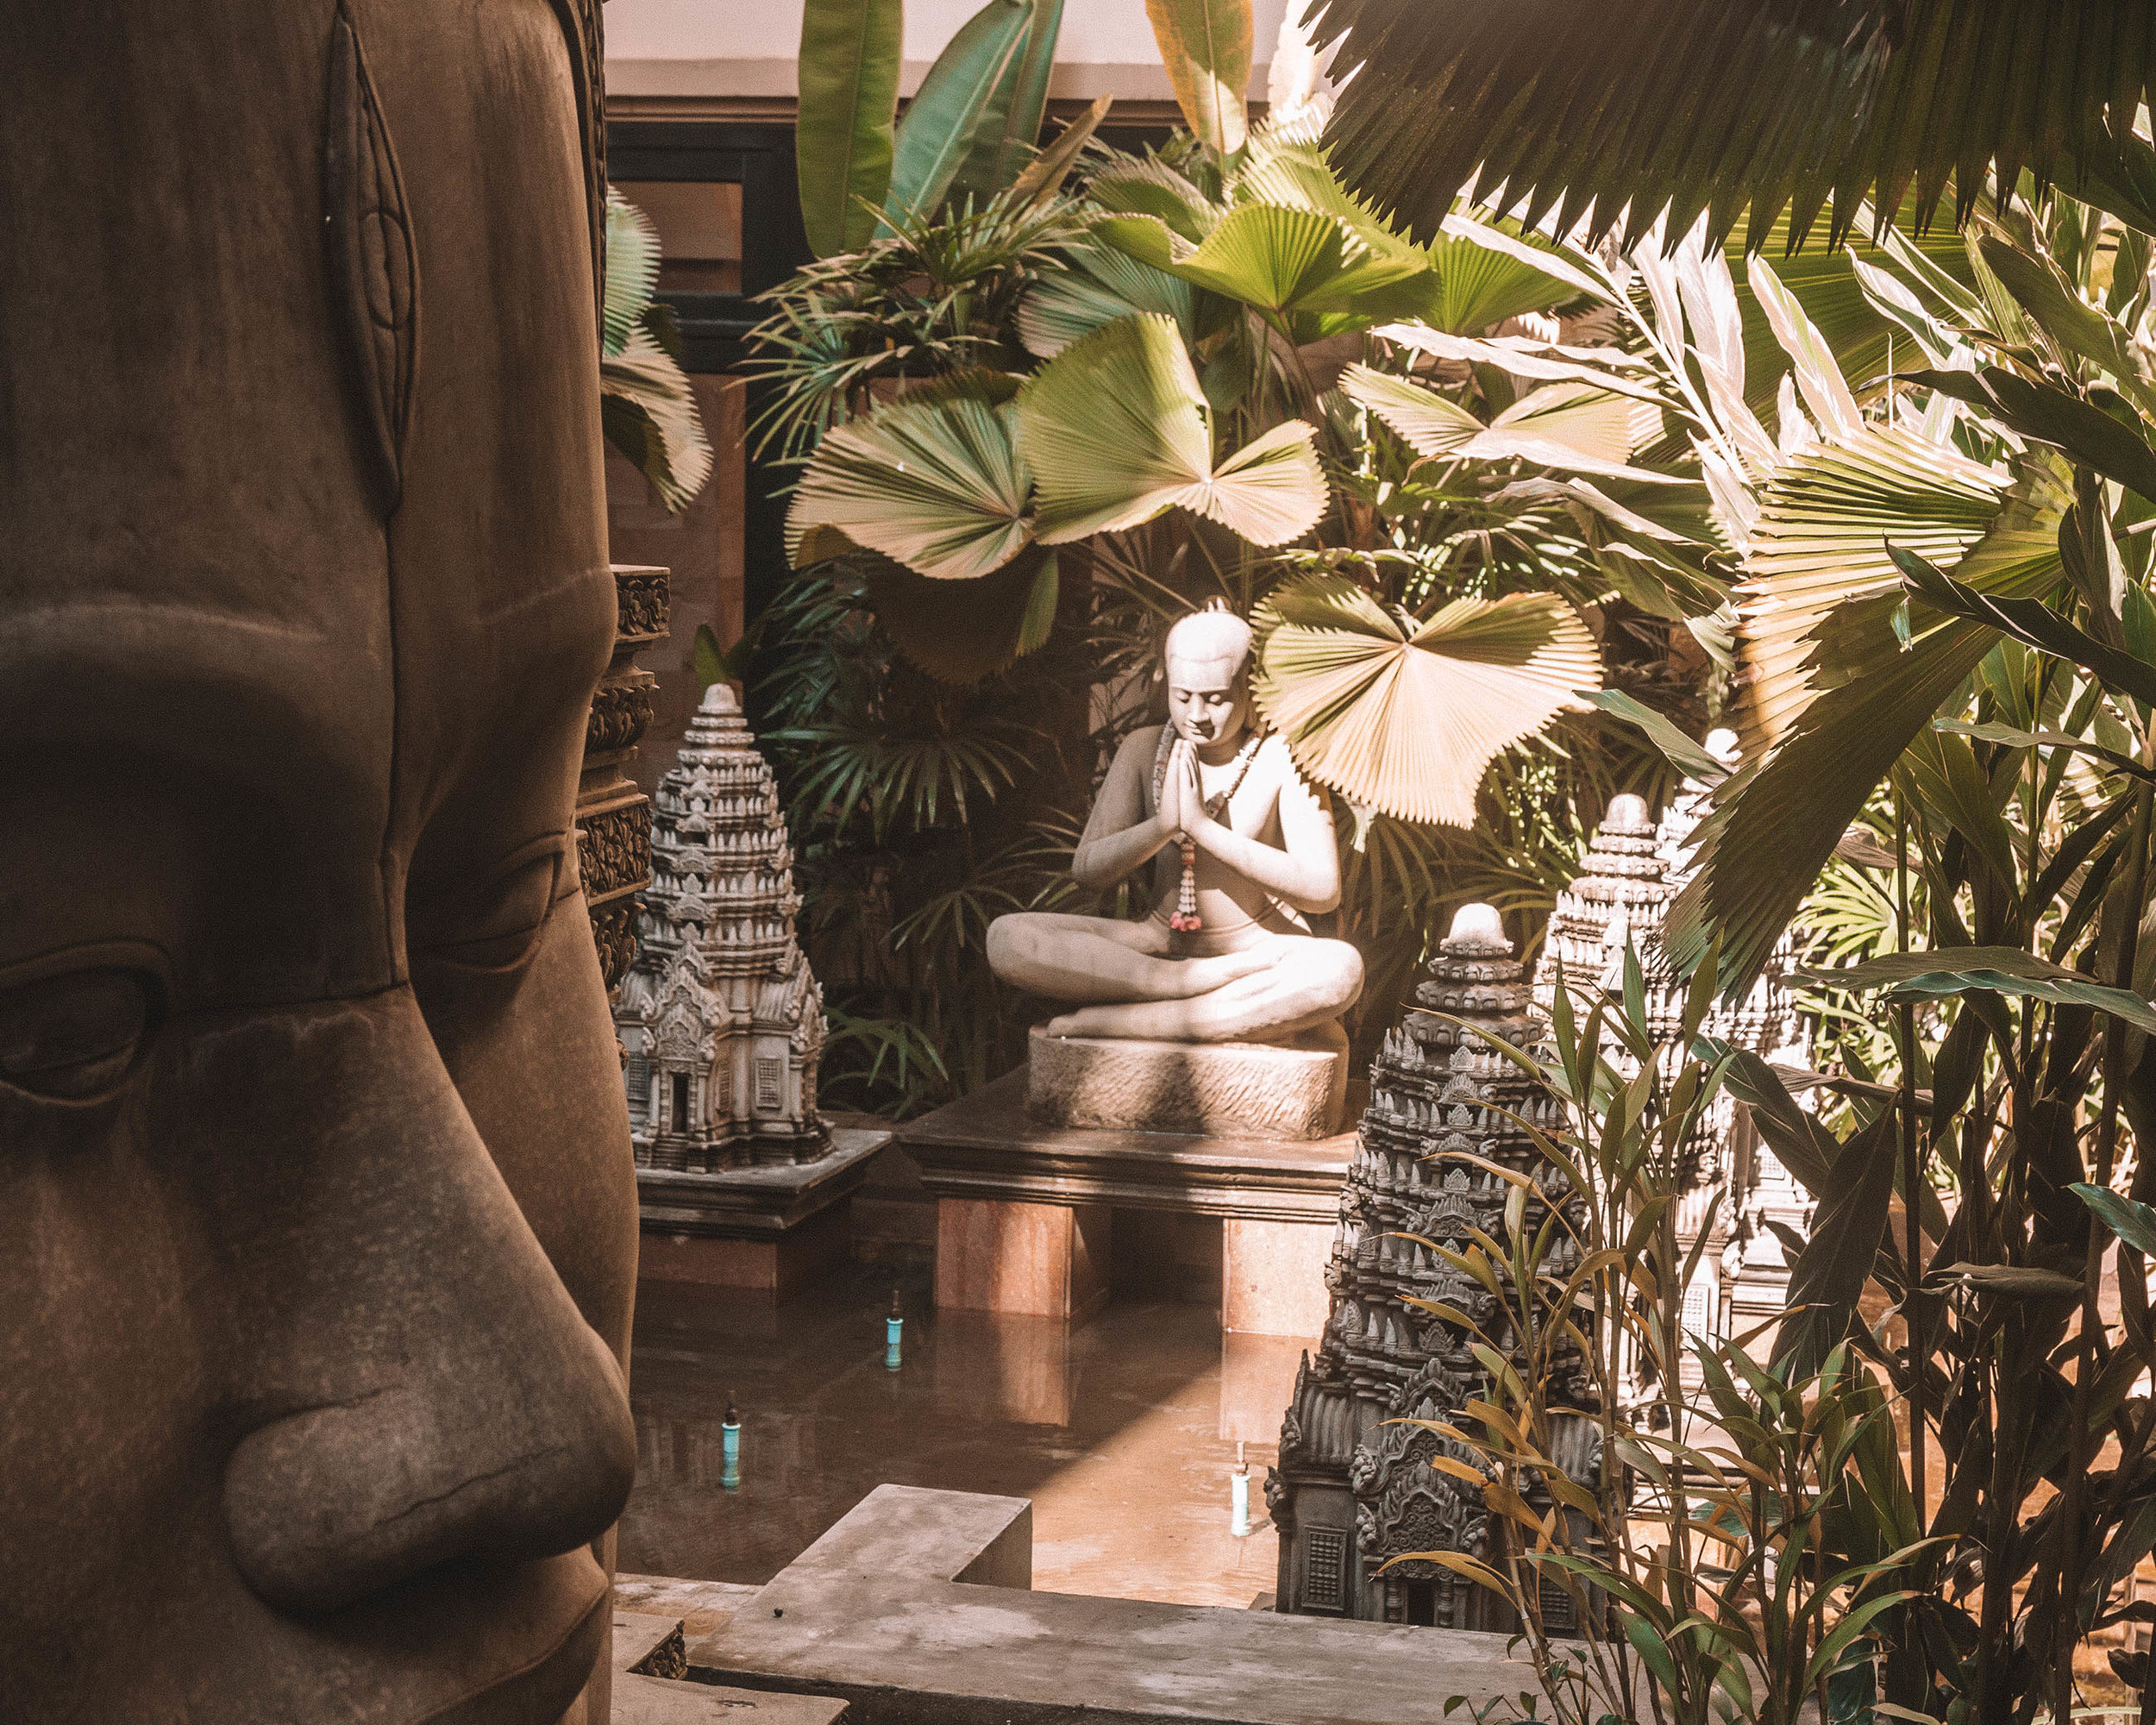 Cambodia Siem Reap Angkor Miracle Resort and Spa Buddha garden nature love peace serenity find your light outdoors khmer culture